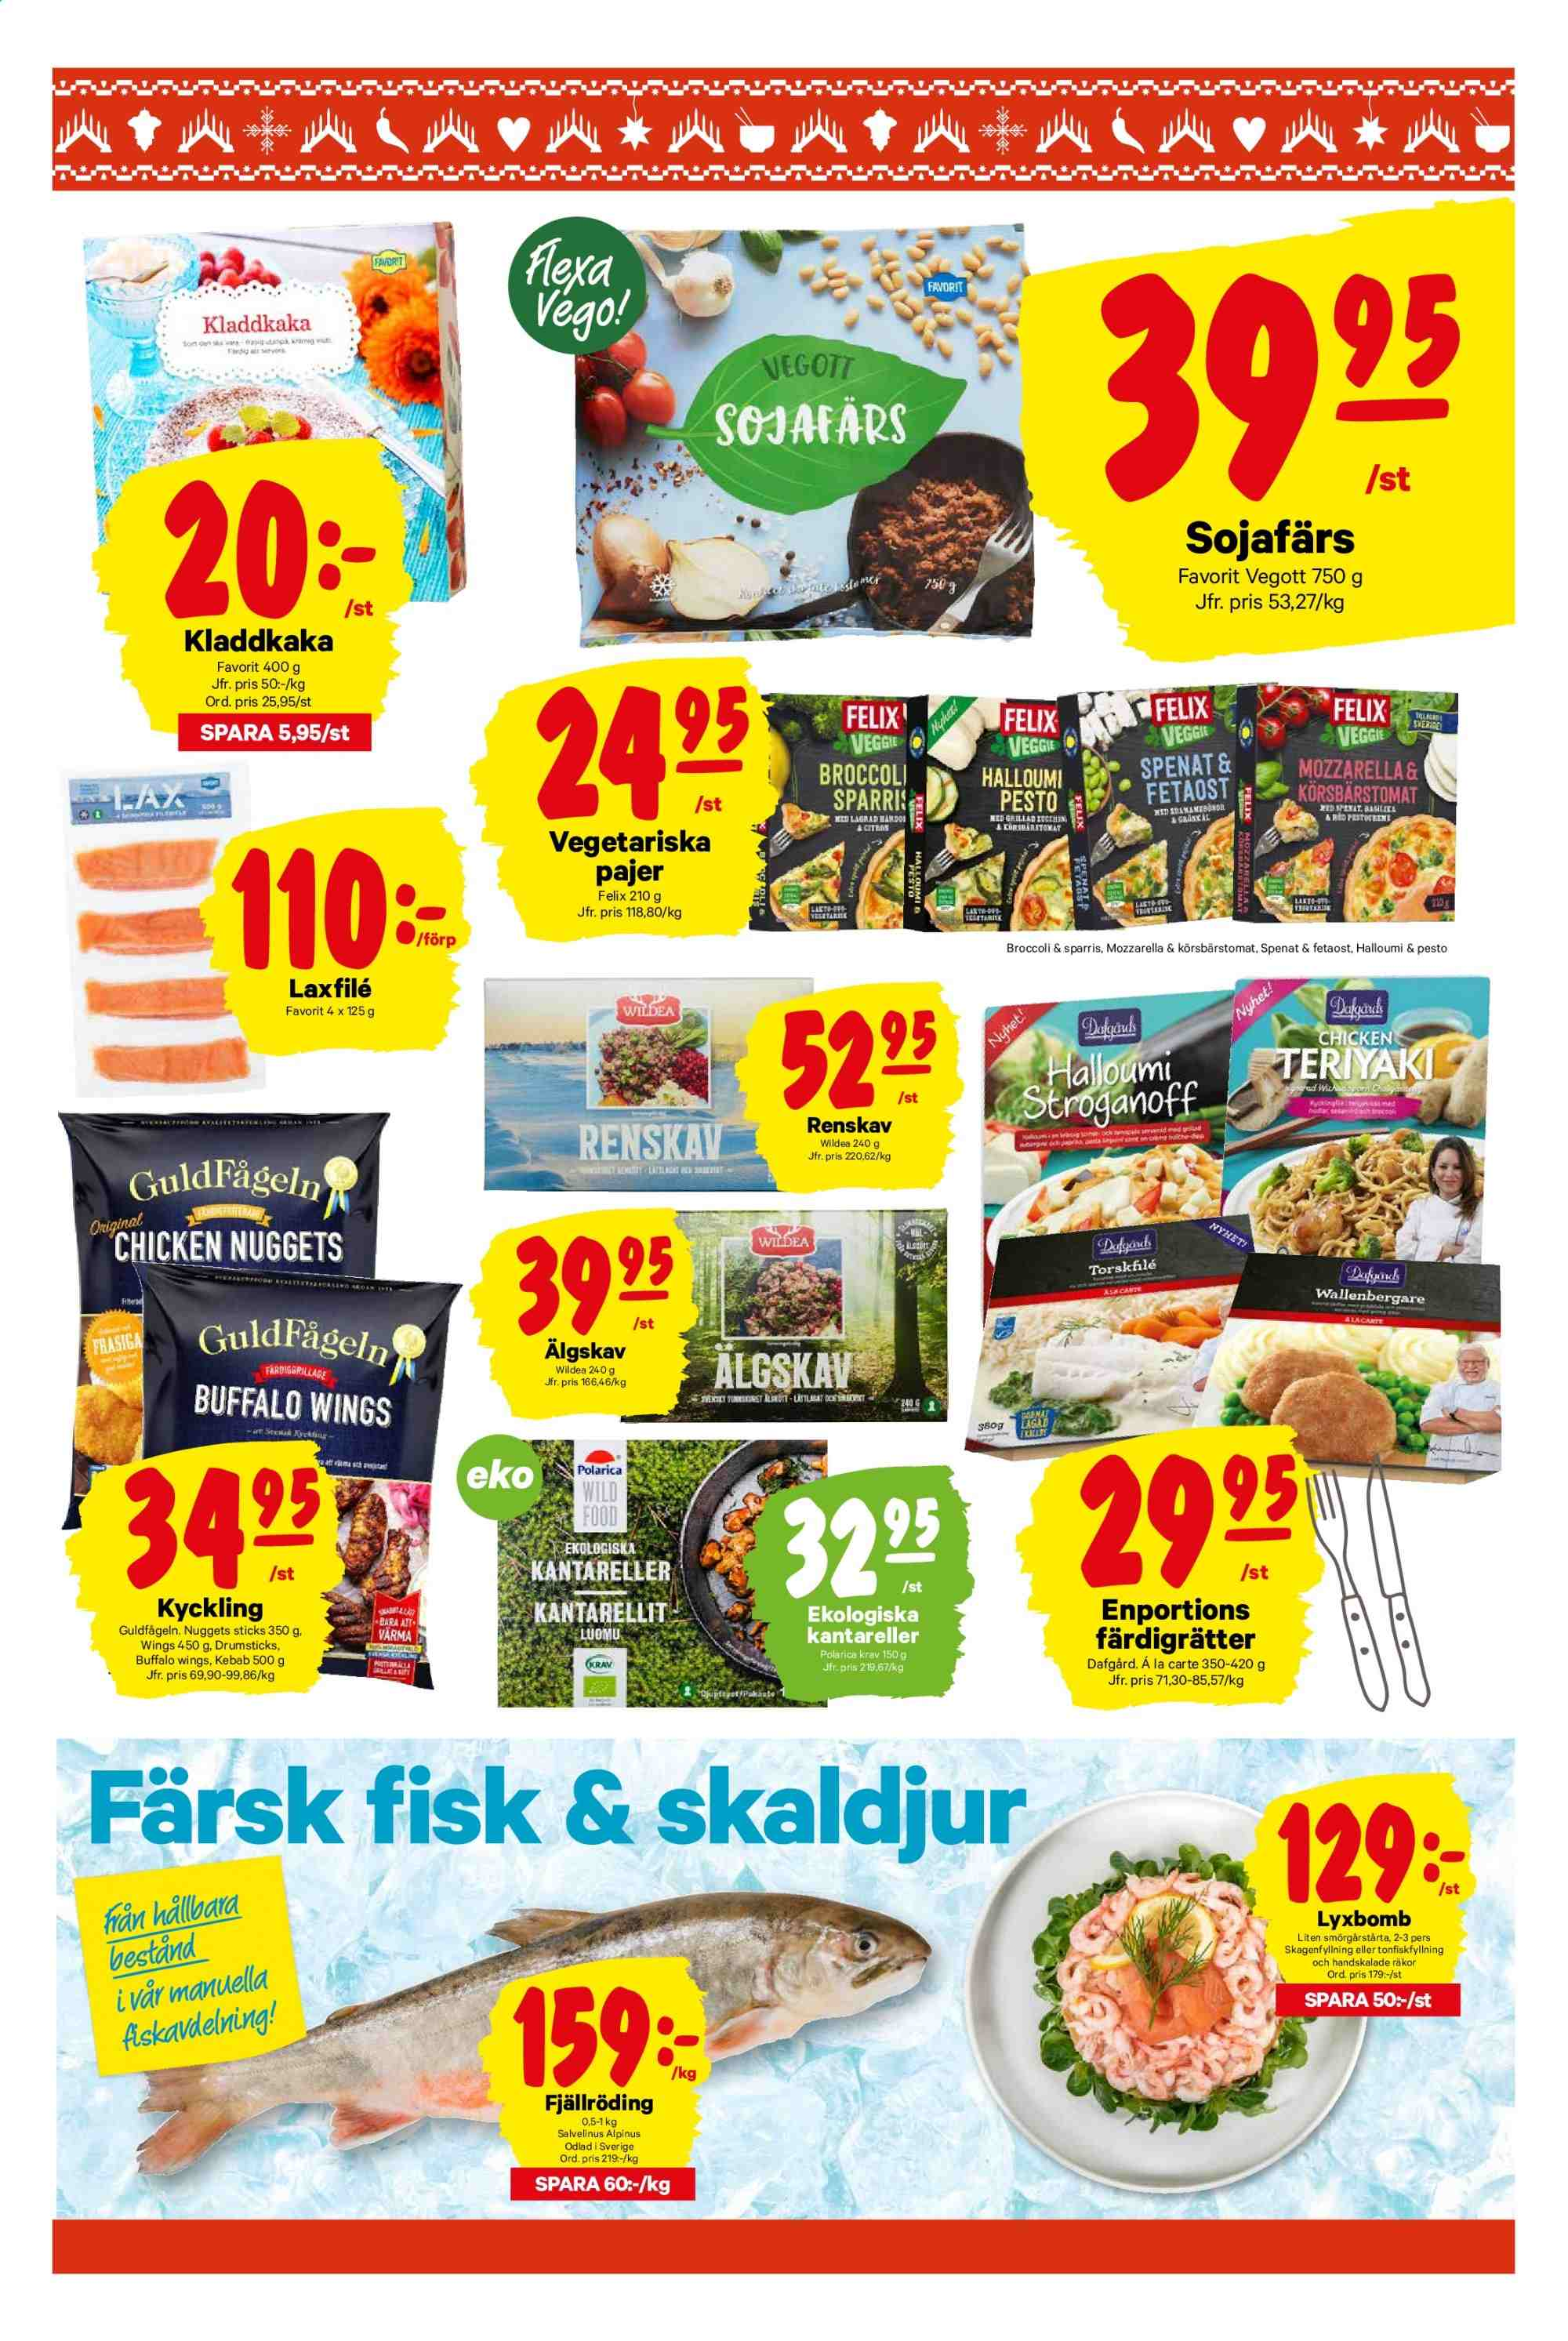 City Gross reklamblad - 25/11 2019 - 1/12 2019. Sida 11.